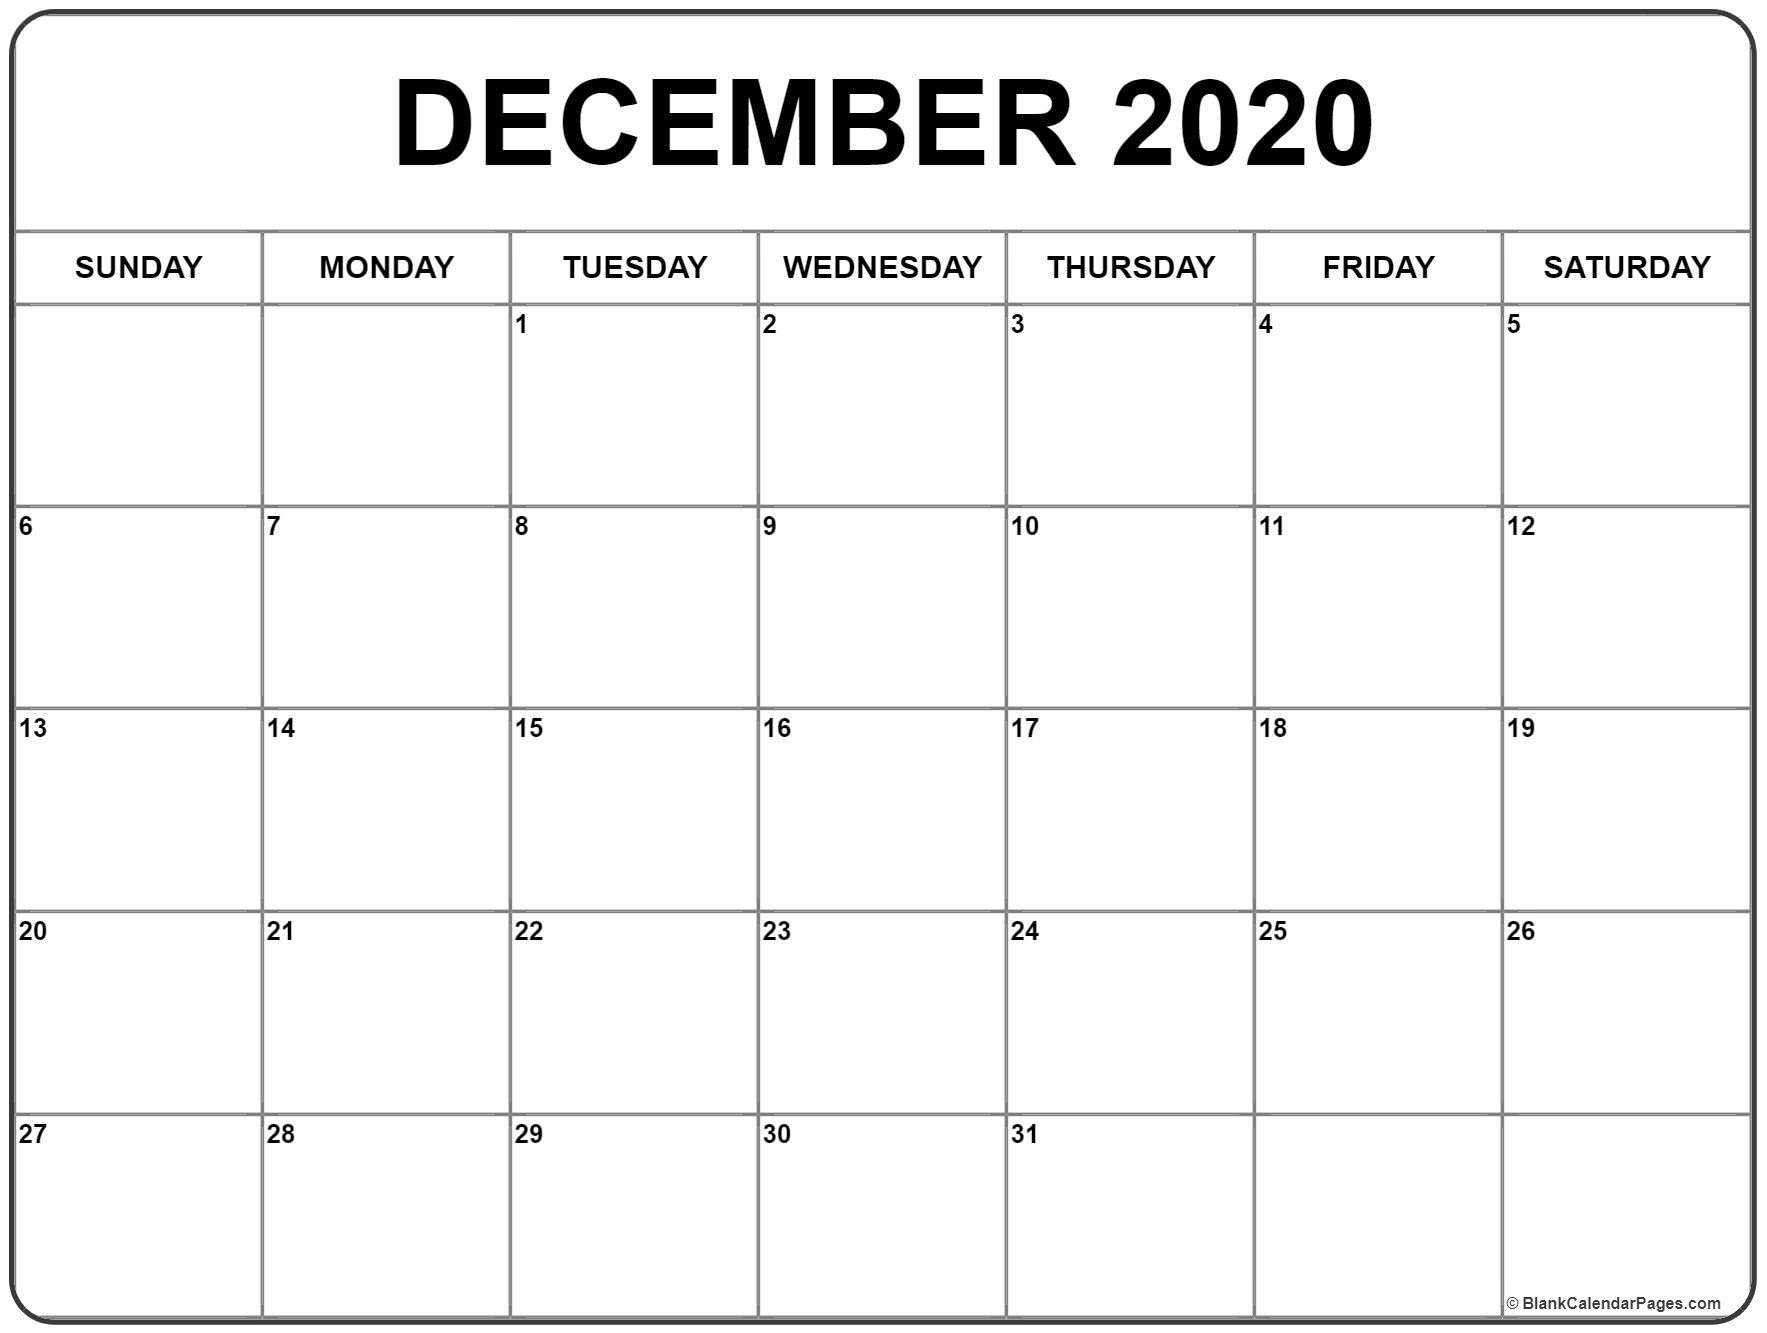 Monthly Calendar 2020 December - Remar-January Thru December 2020 Printable Monthly Calendar